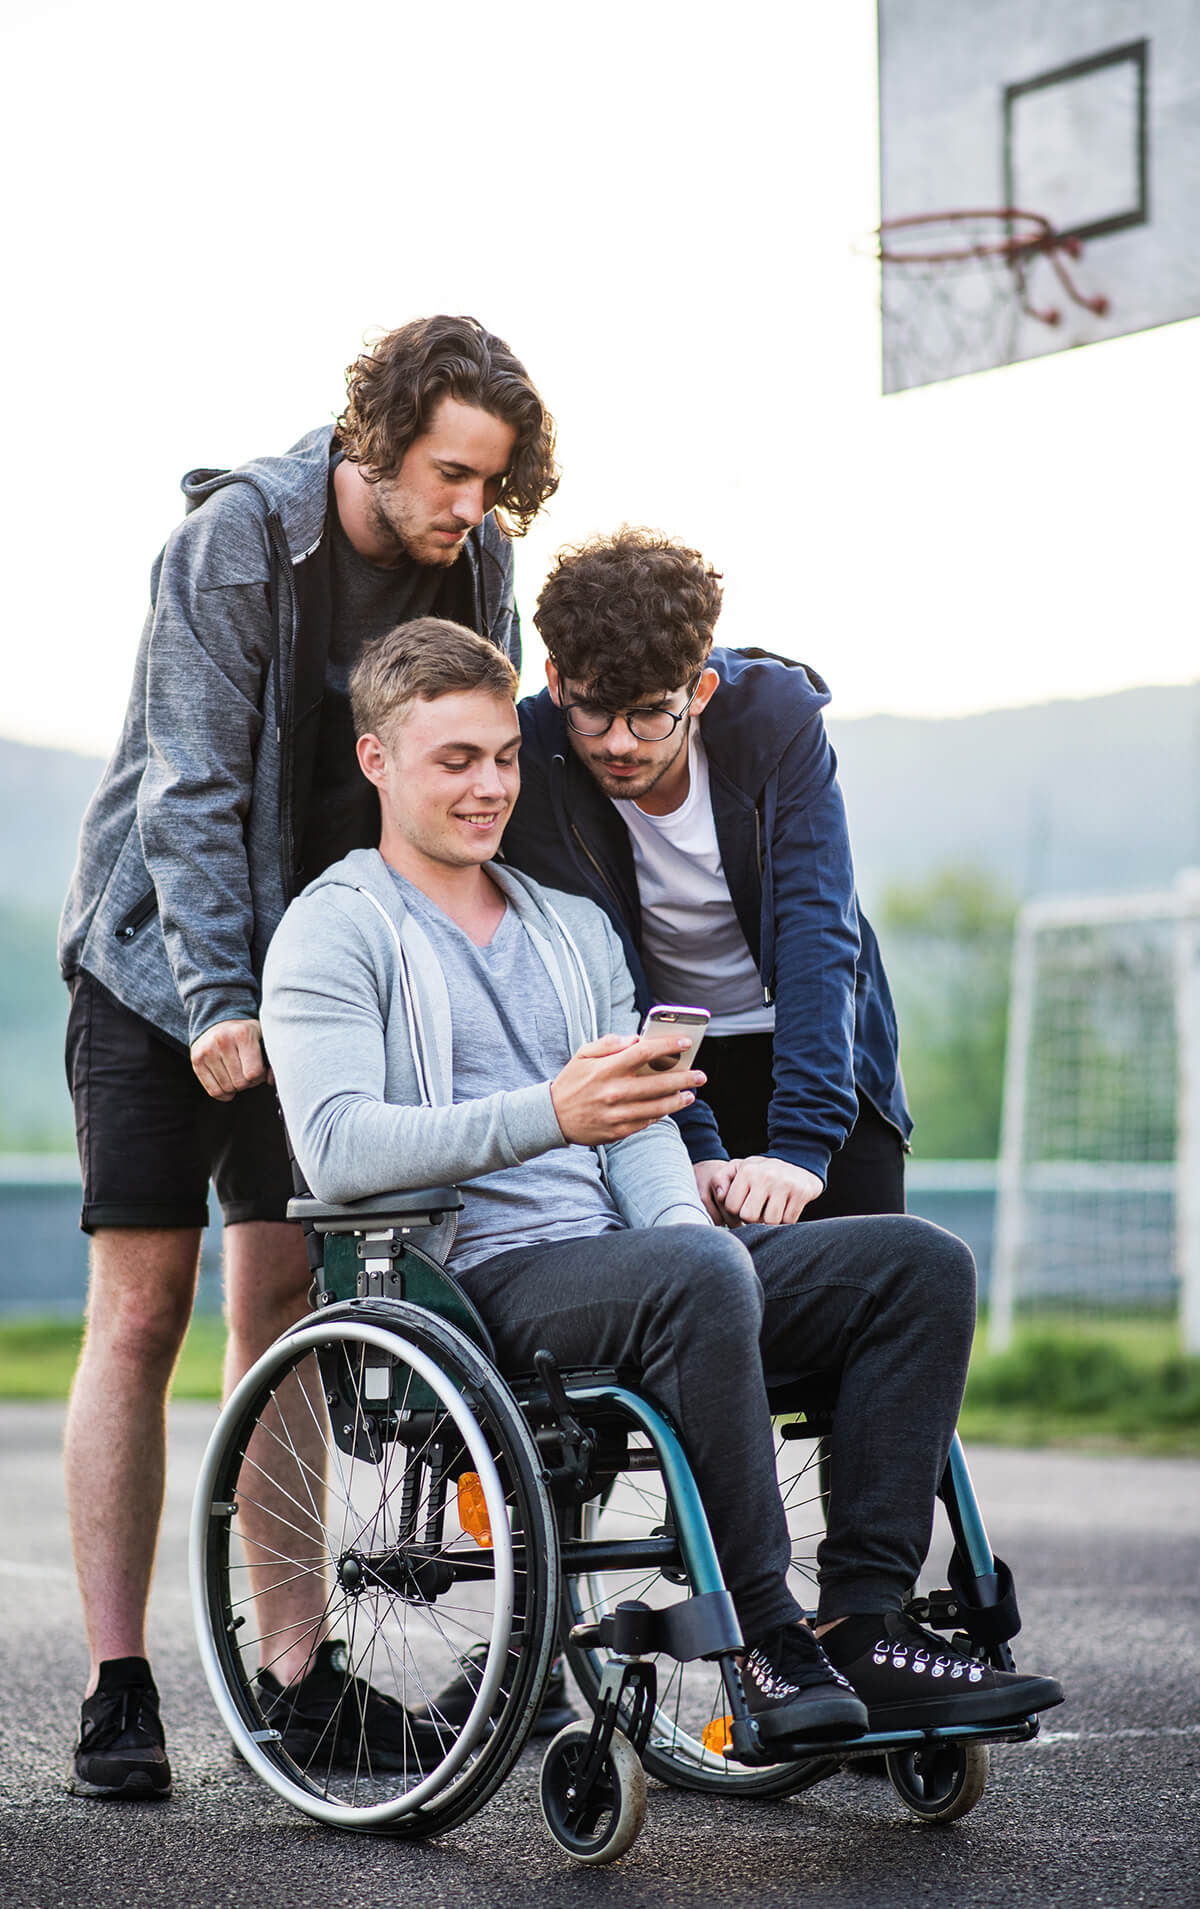 Three teenage boys are on a basketball court and looking at the phone that one boy is holding. The boy holding the phone is in a wheelchair.